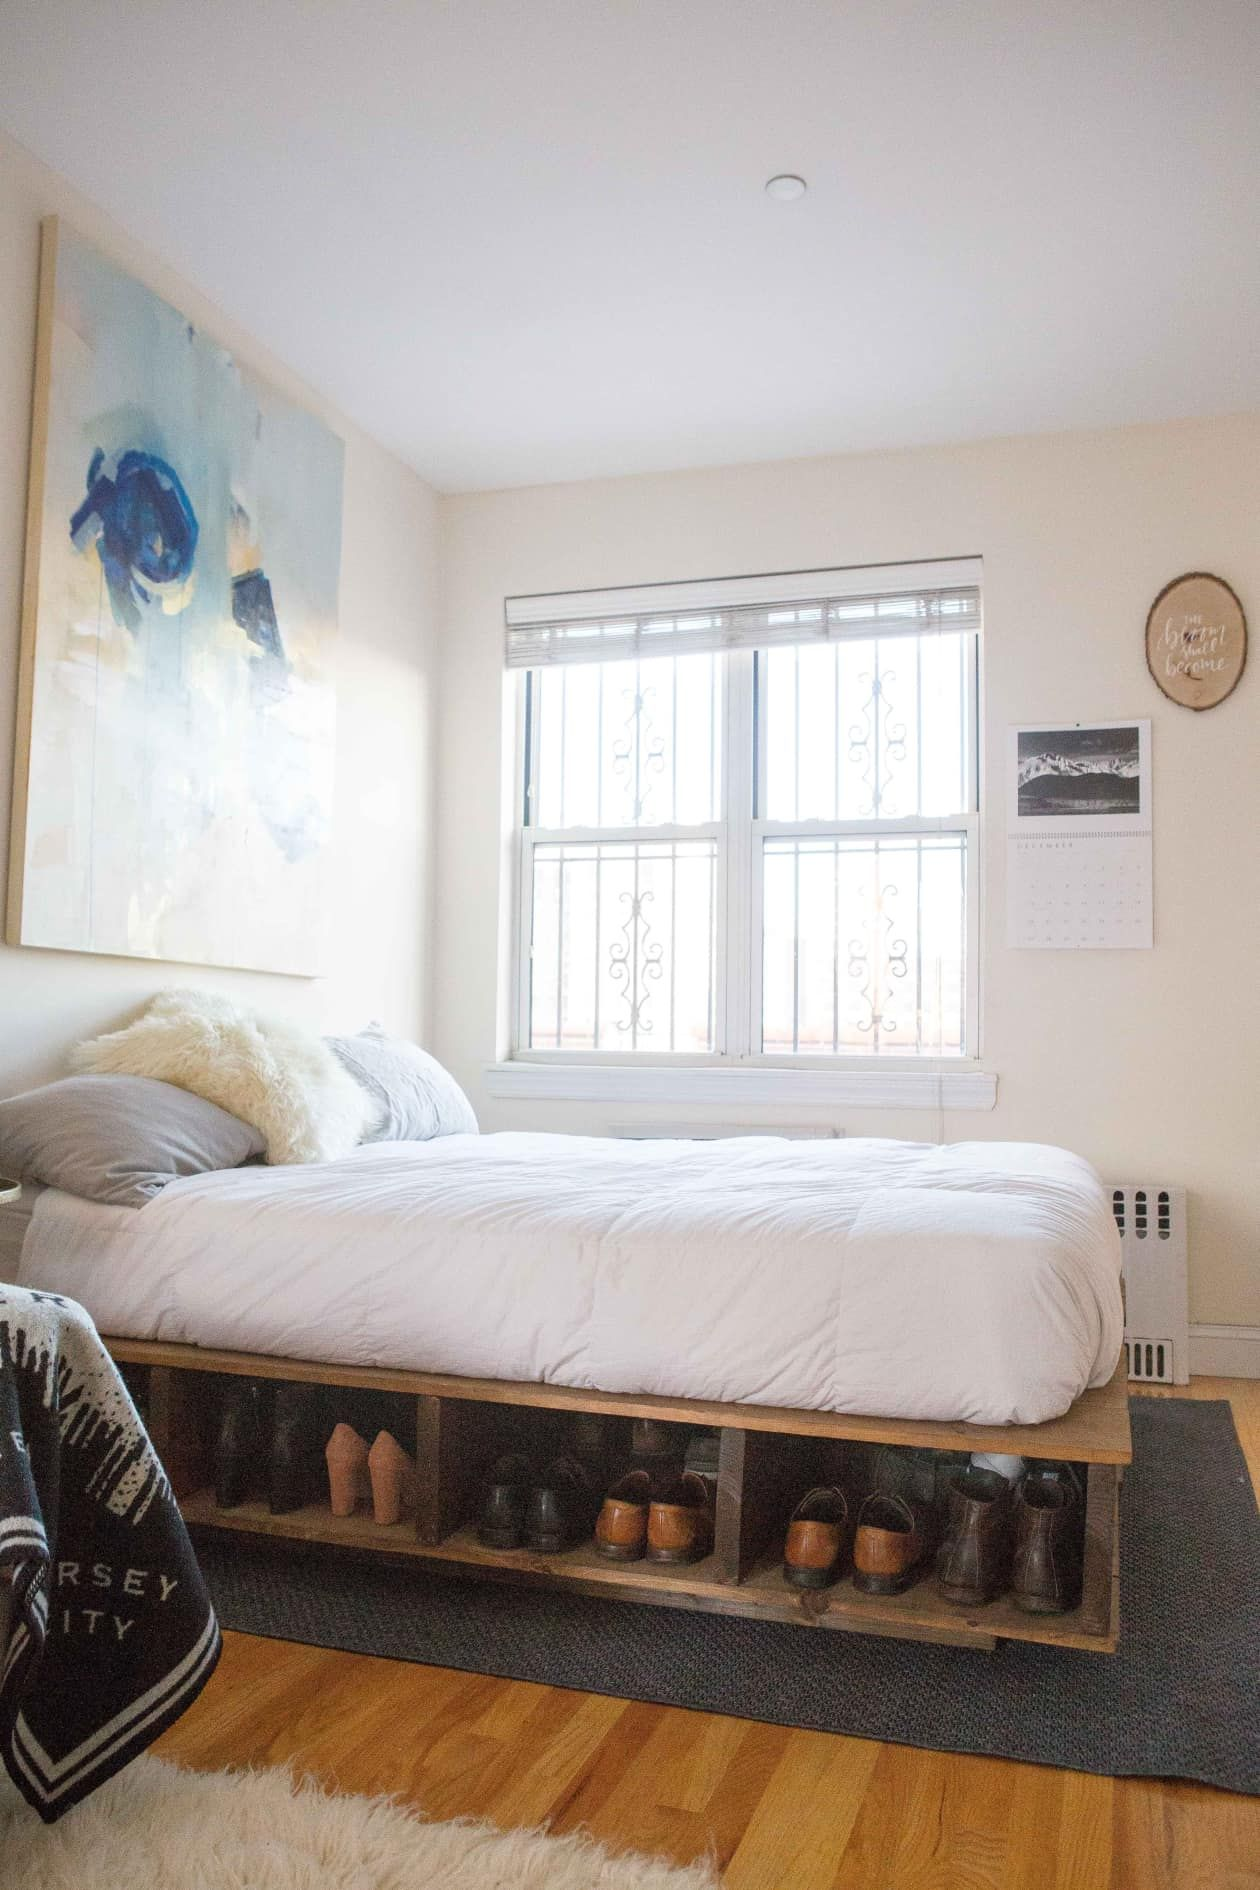 This One Thing Will Make Your Small Bedroom Feel so Much